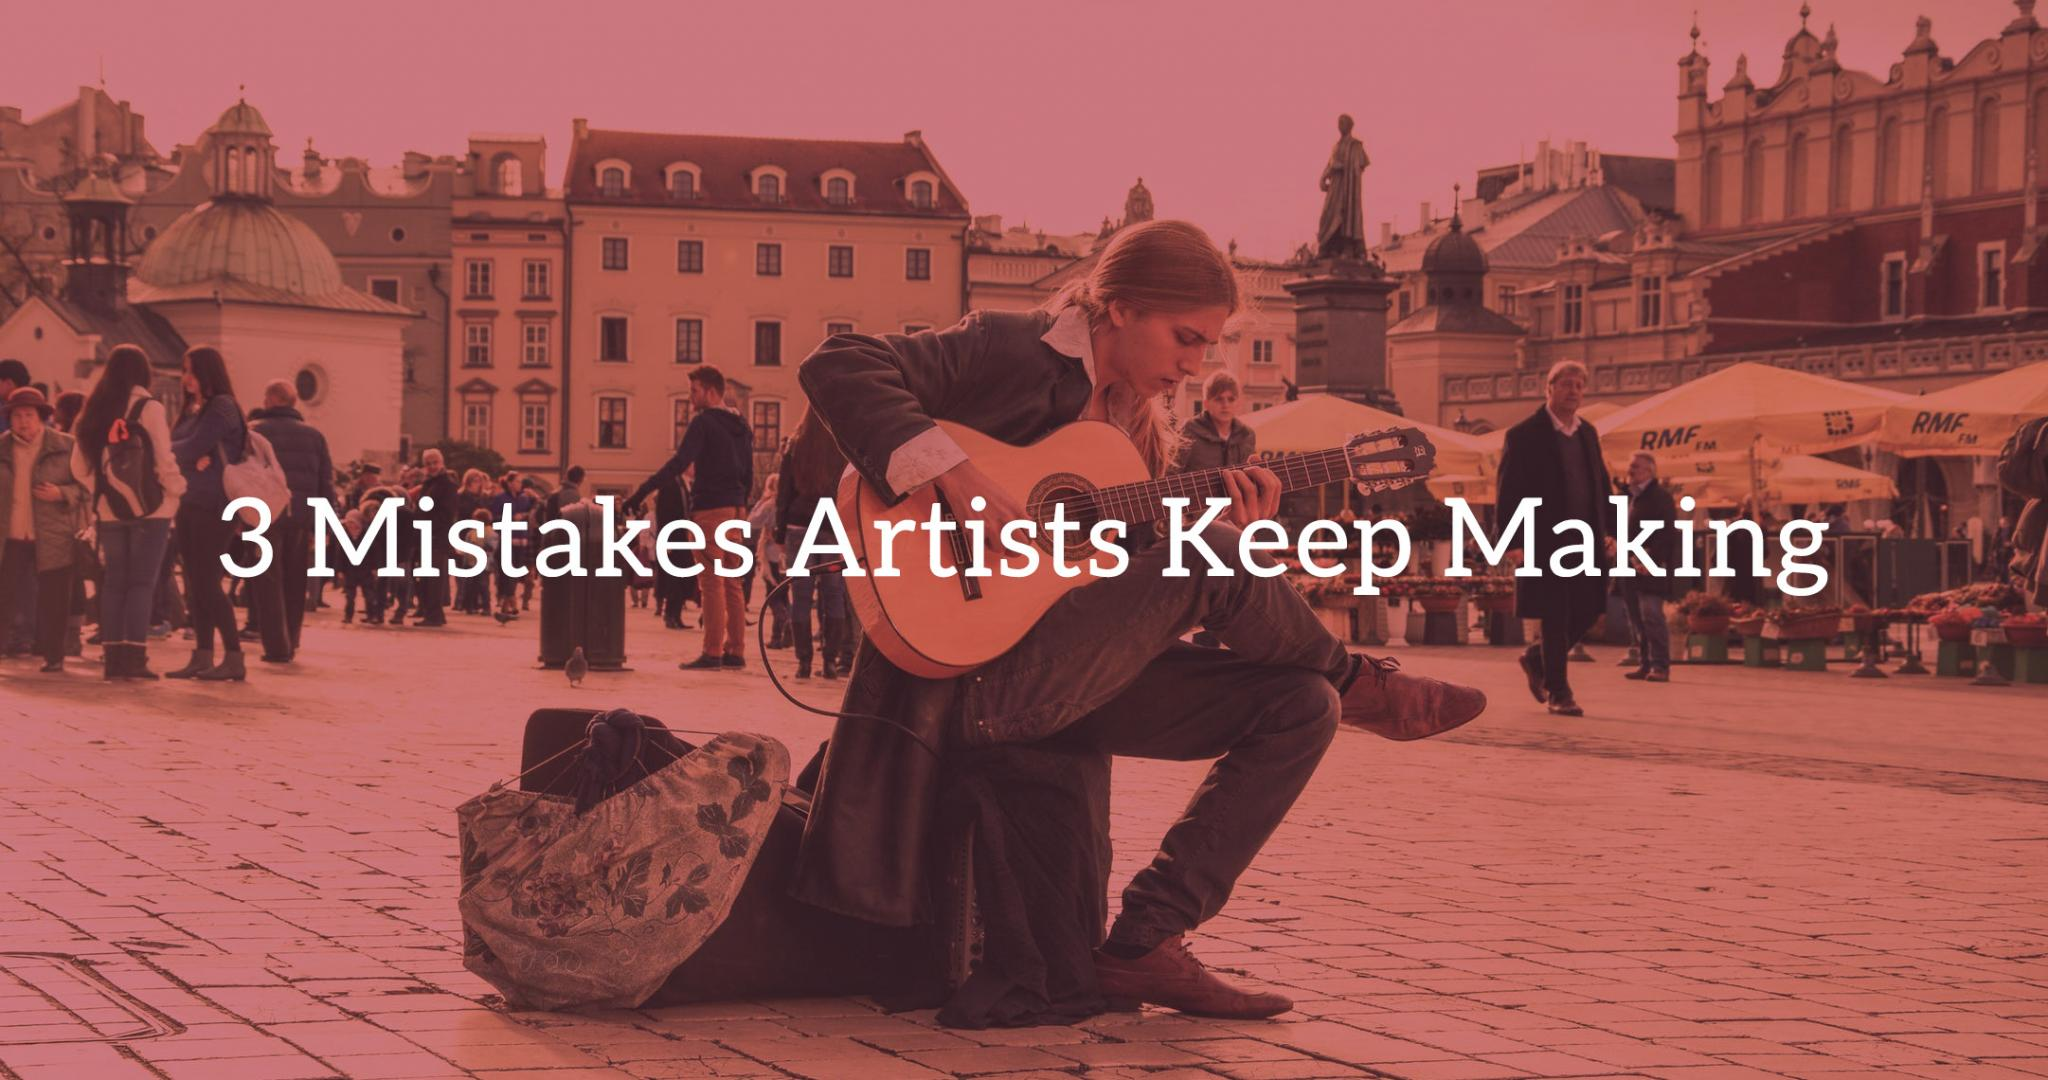 12 Ways: 3 Mistakes Artists Keep Making